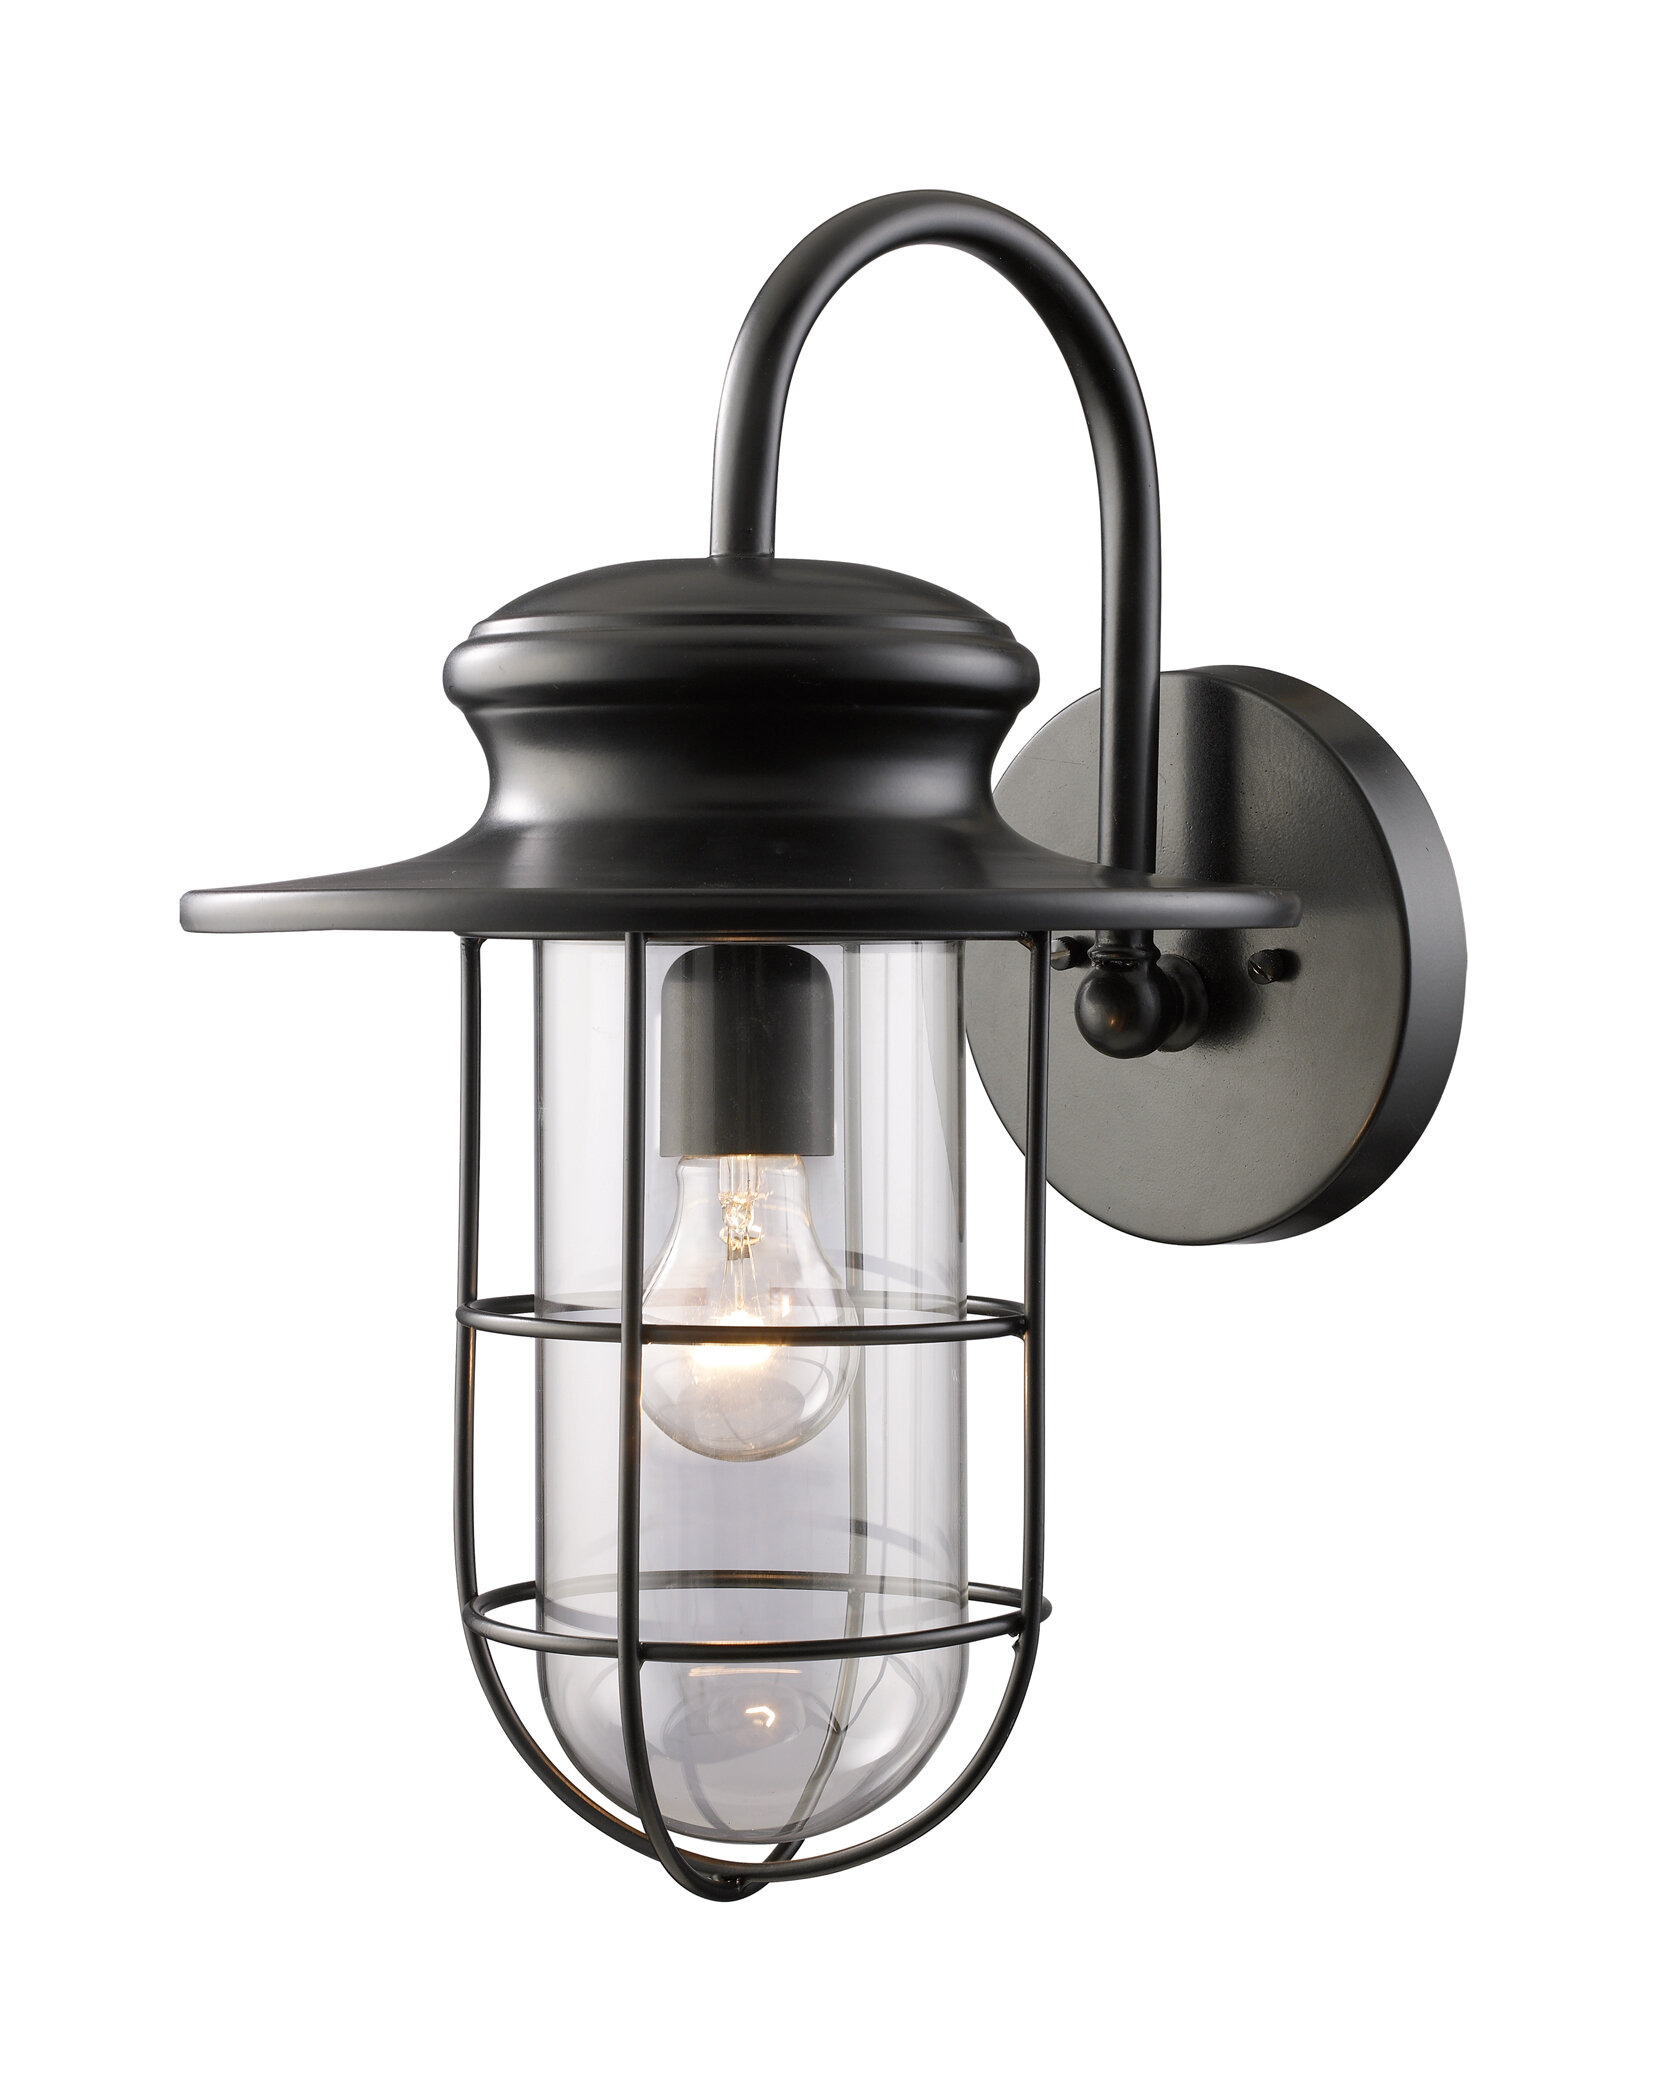 Breakwater bay garr 1 light outdoor barn light wayfair